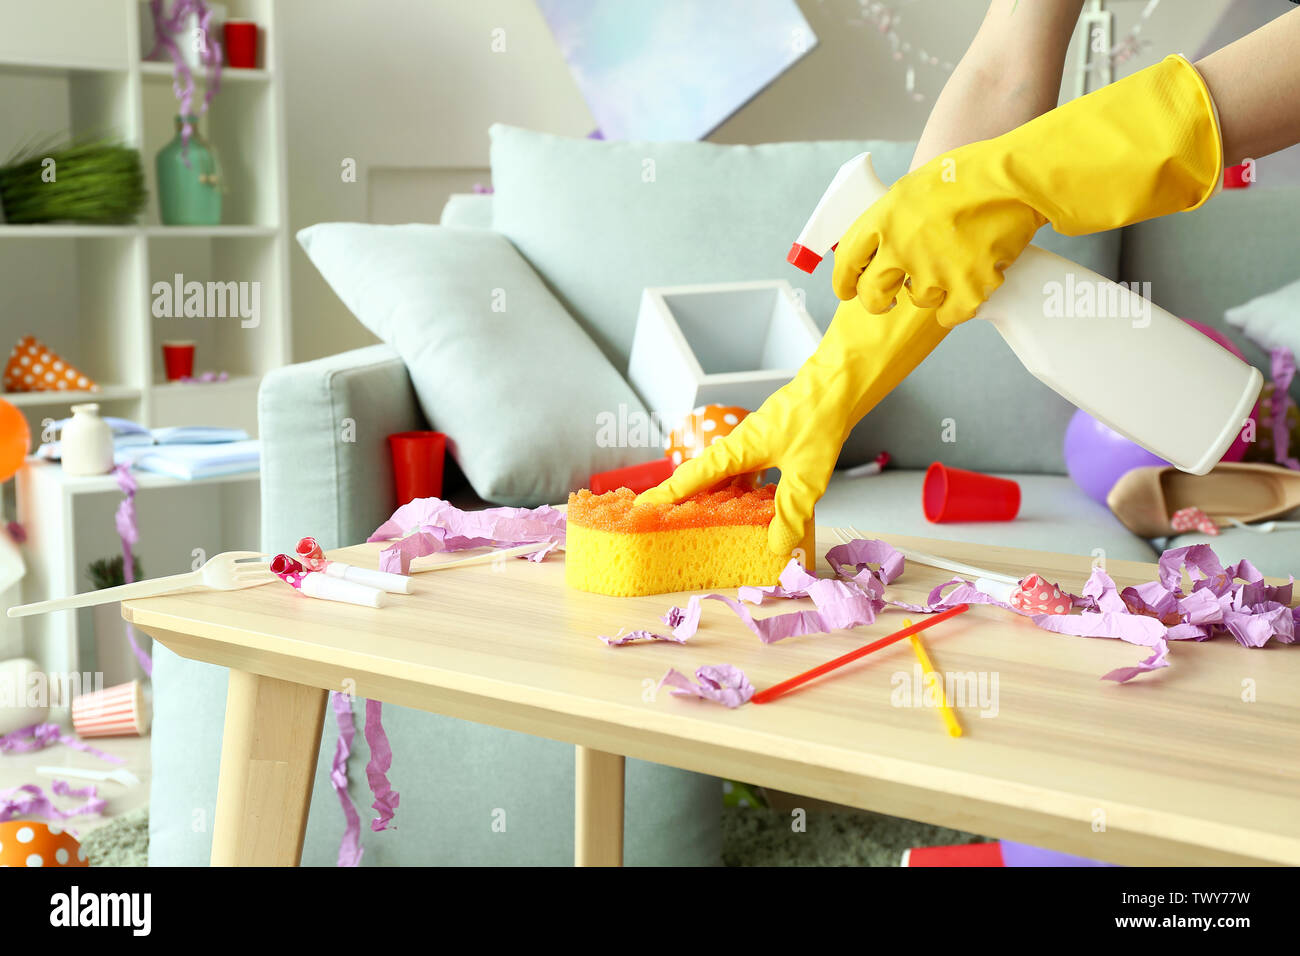 Janitor cleaning room after party - Stock Image